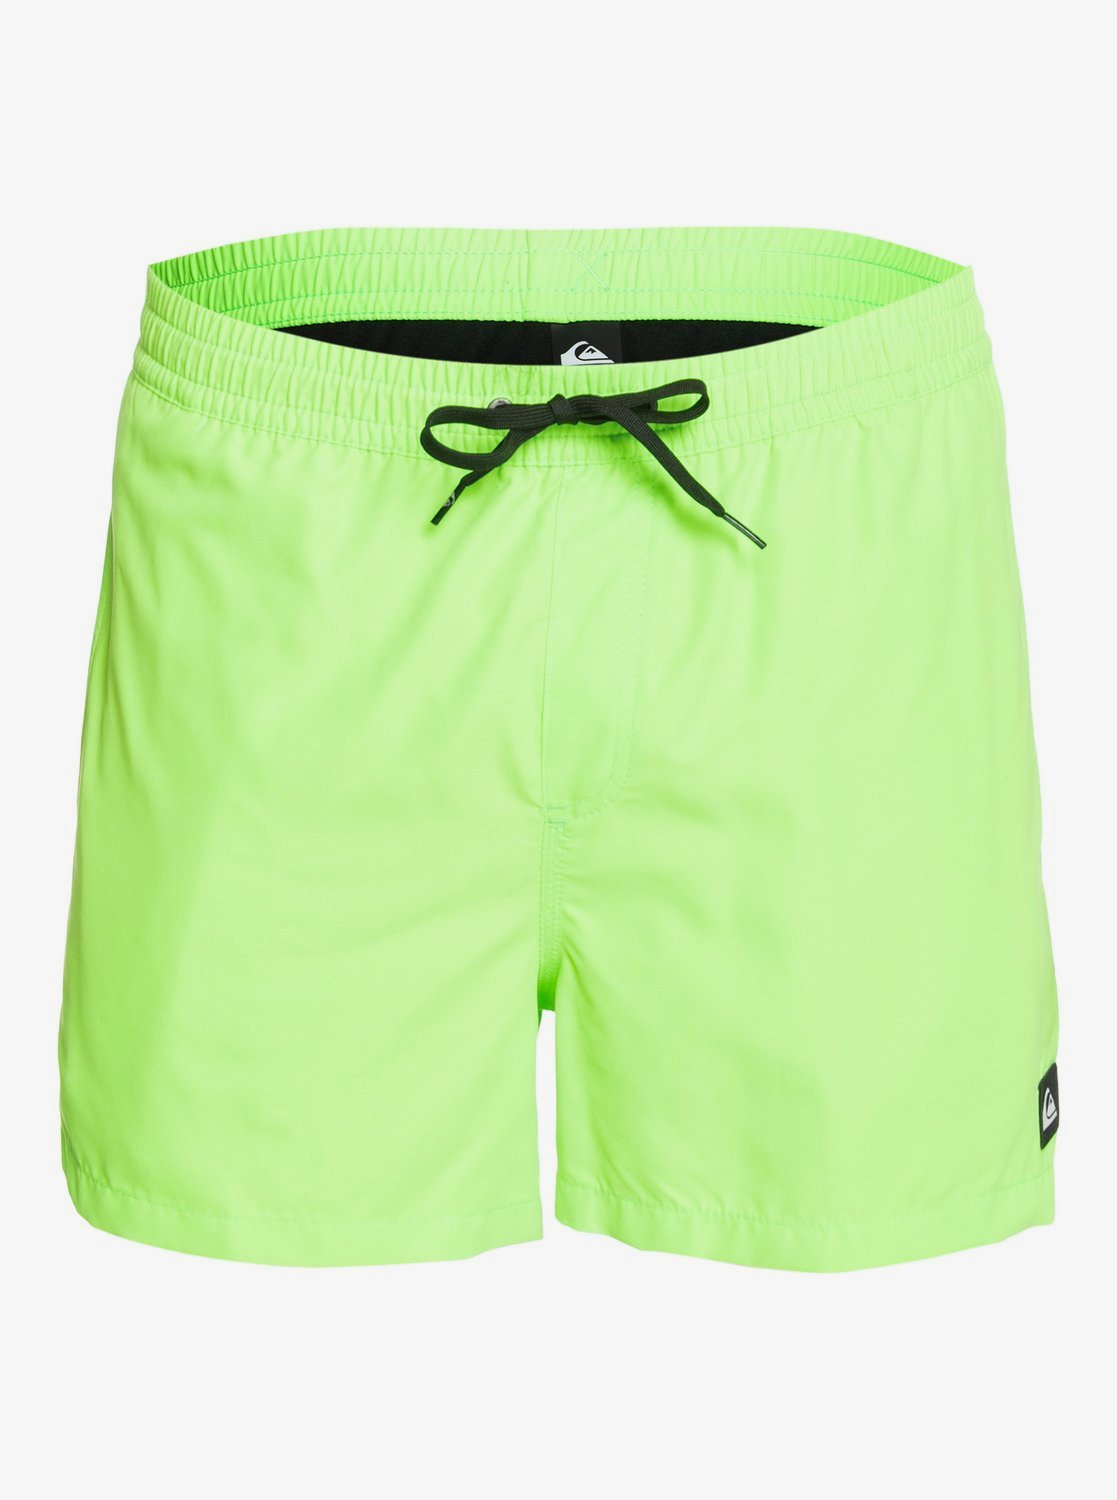 Quiksilver M Everyday Volley 15 Swimshort 2020